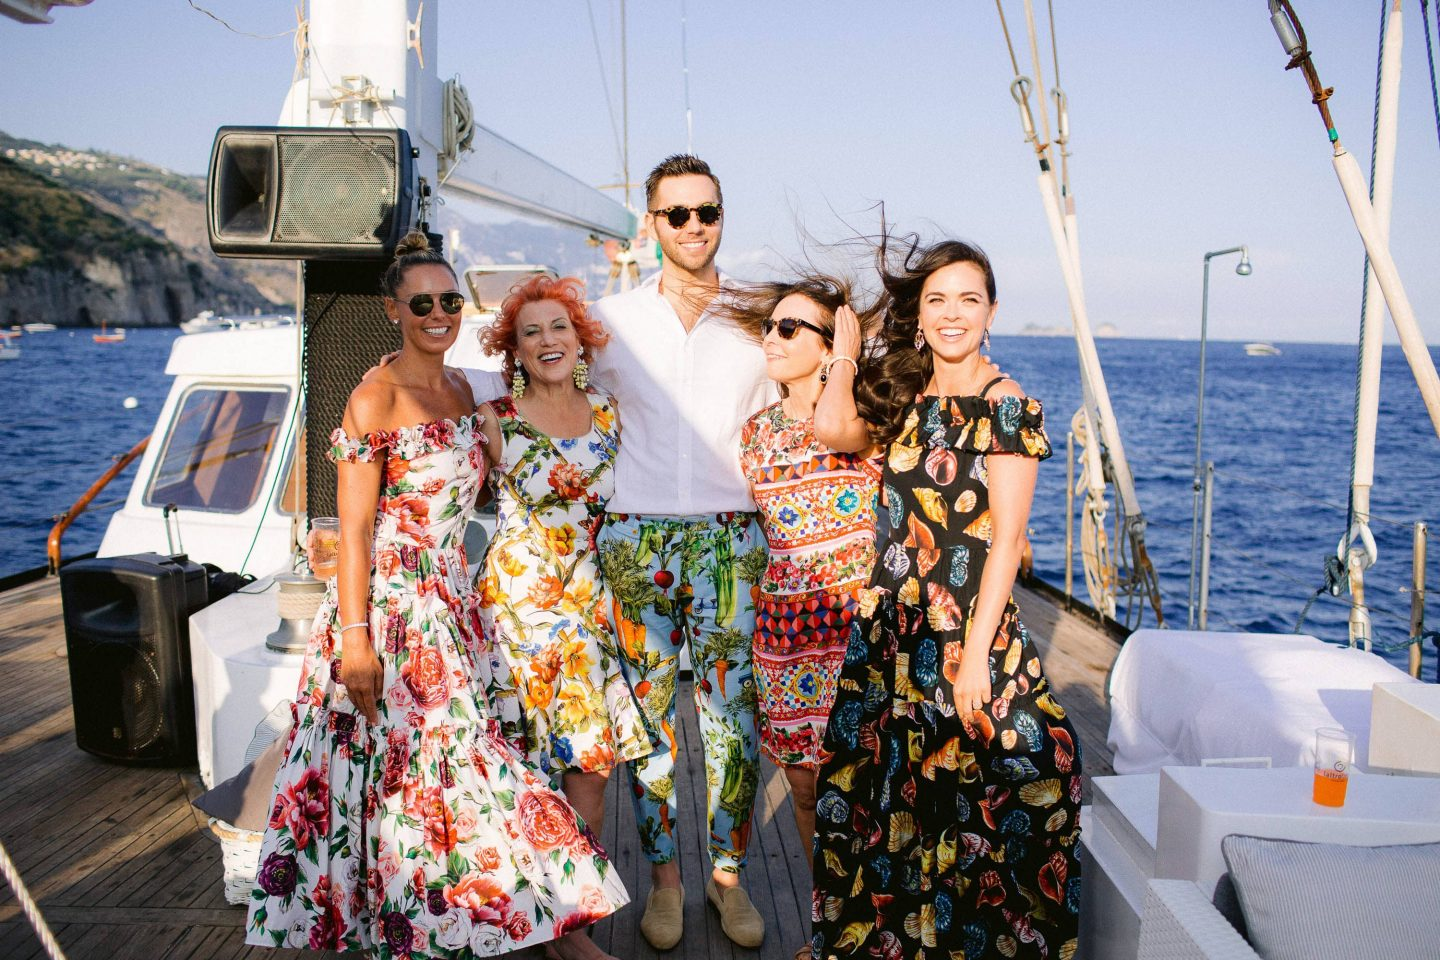 Wedding guests during sunset sail to Capri at this Amalfi Coast wedding weekend held Lo Scoglio | Photo by Allan Zepeda